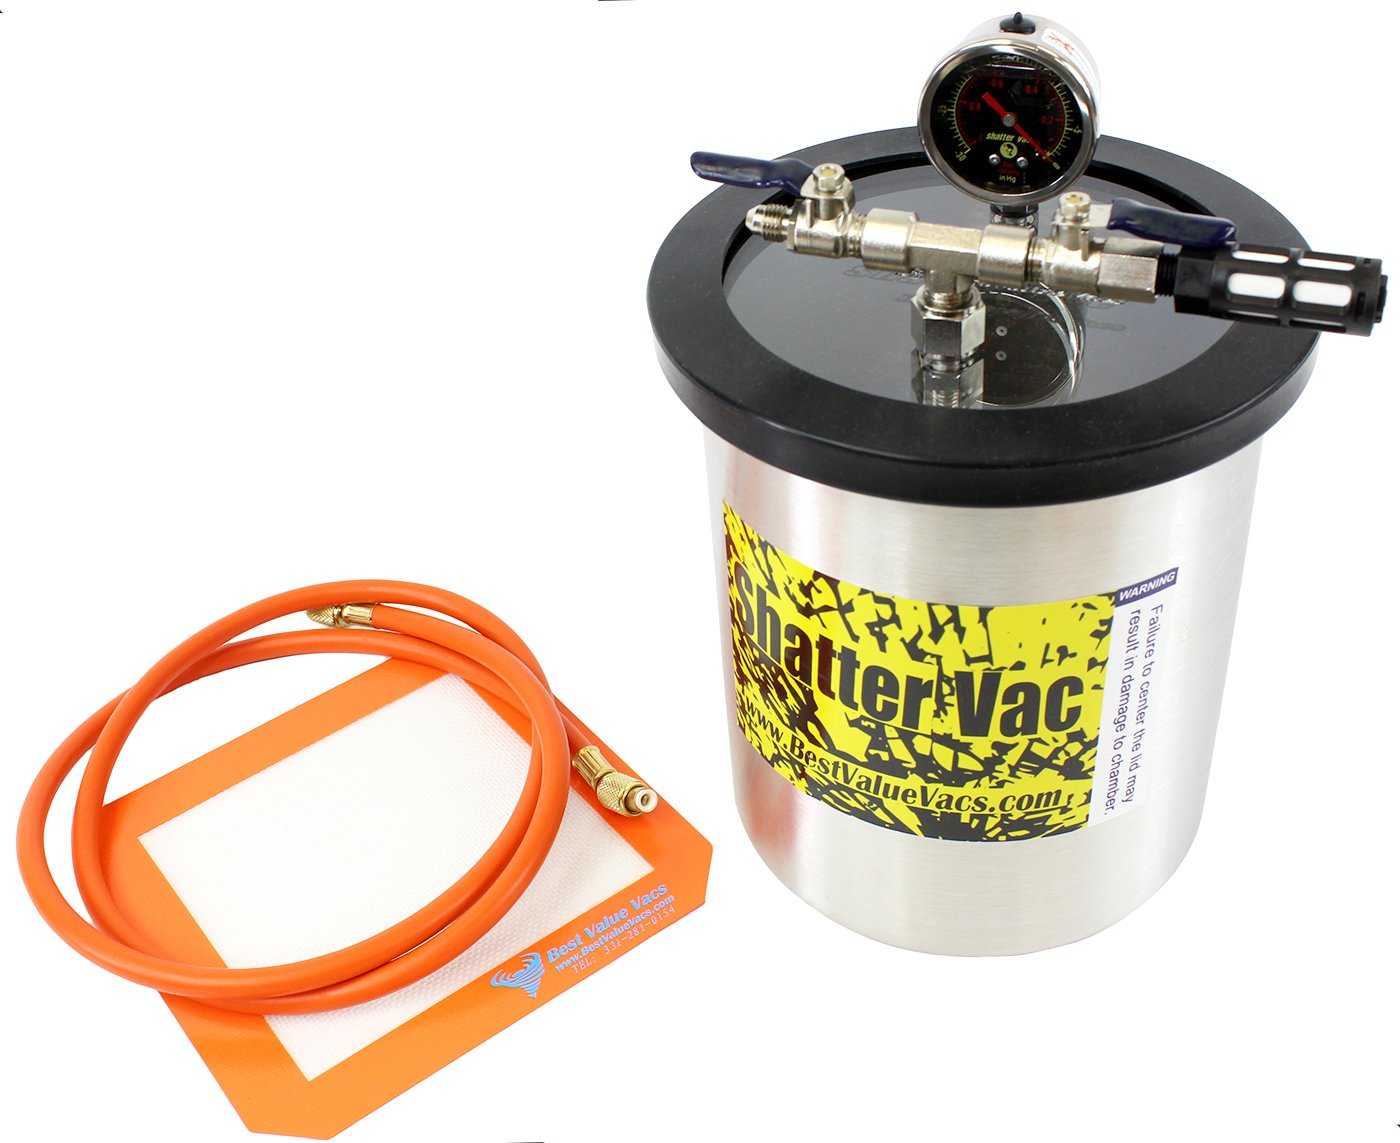 1.5 Gallon Tall Stainless Steel SVac Vacuum Degassing Chamber and Mini 3CFM Single Stage Vacuum Pump Kit by BEST VALUE VACS (Image #2)